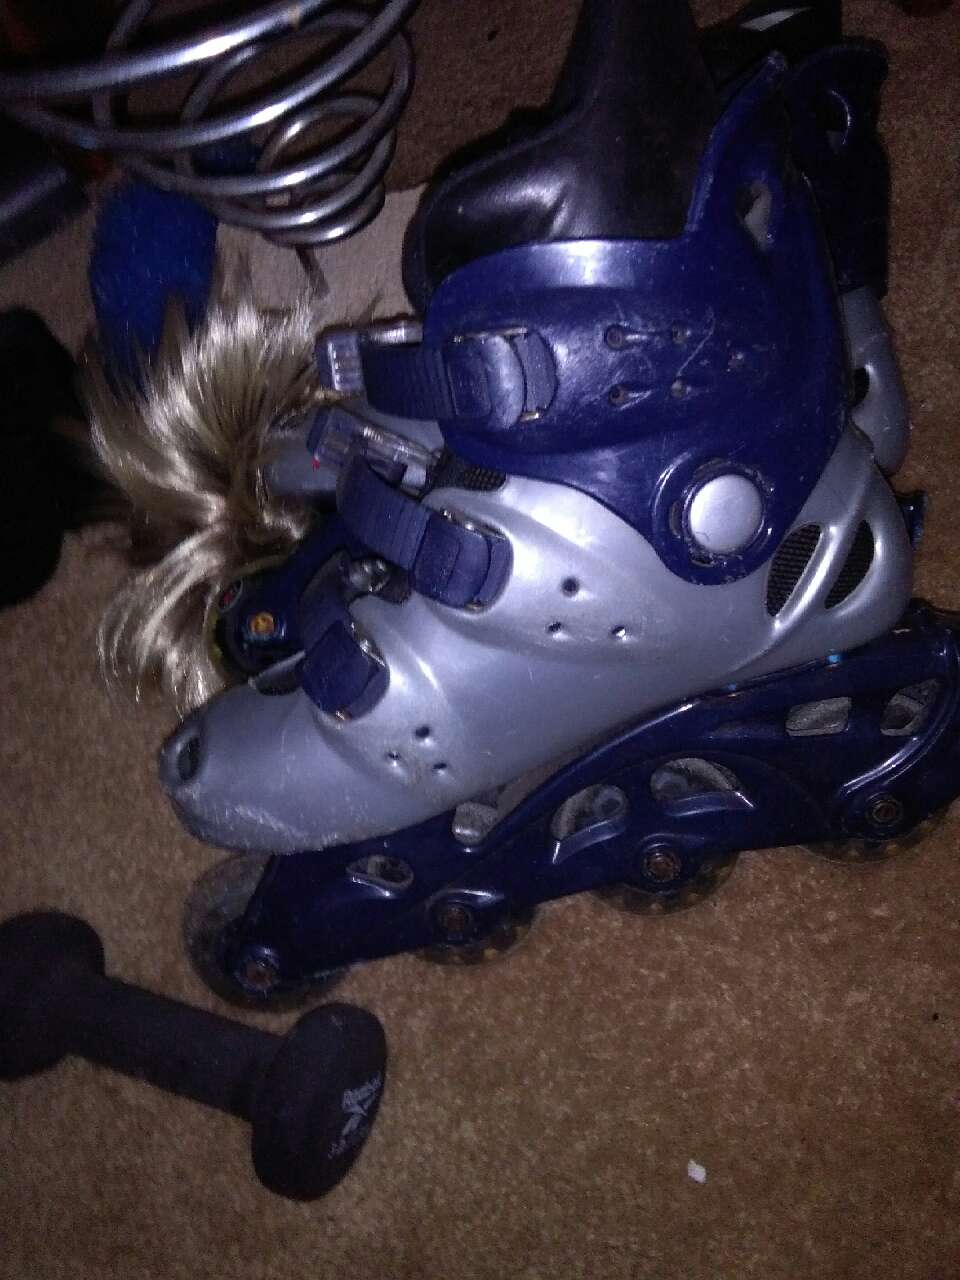 grey and blue inline skates